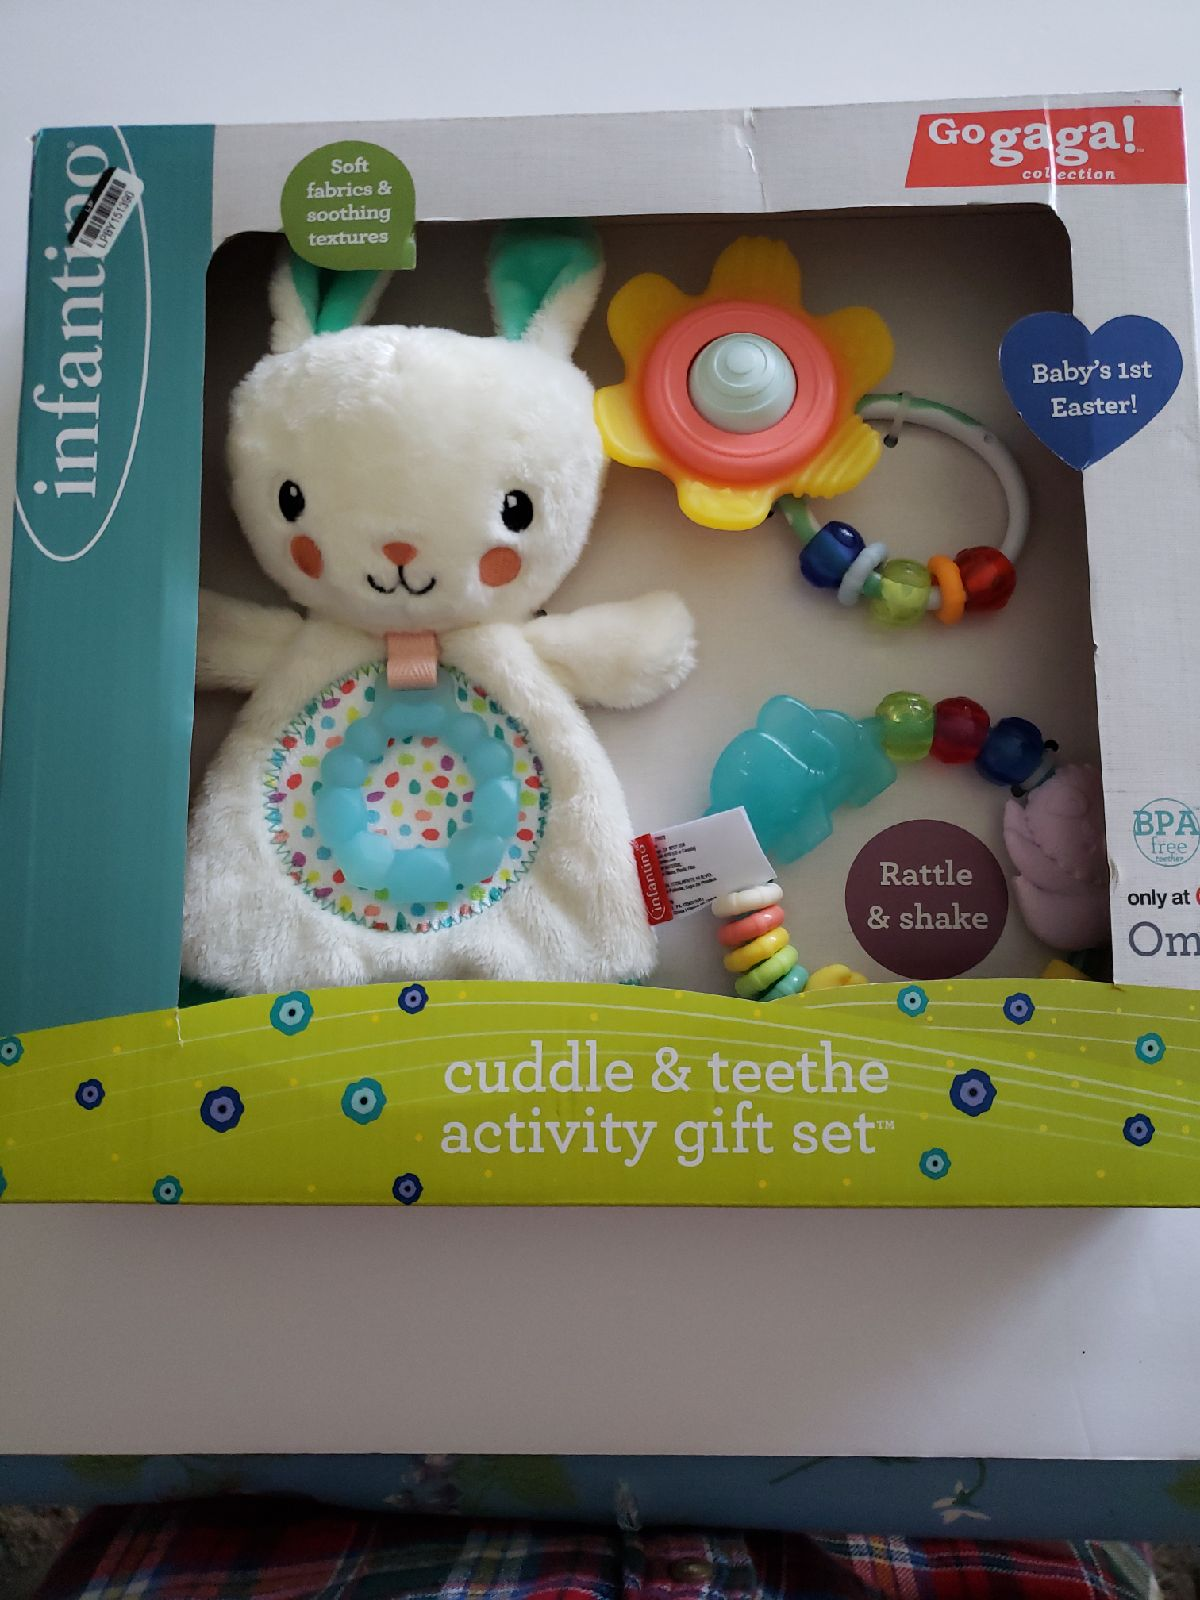 Infantino Go gaga! Baby Cuddle & Teether